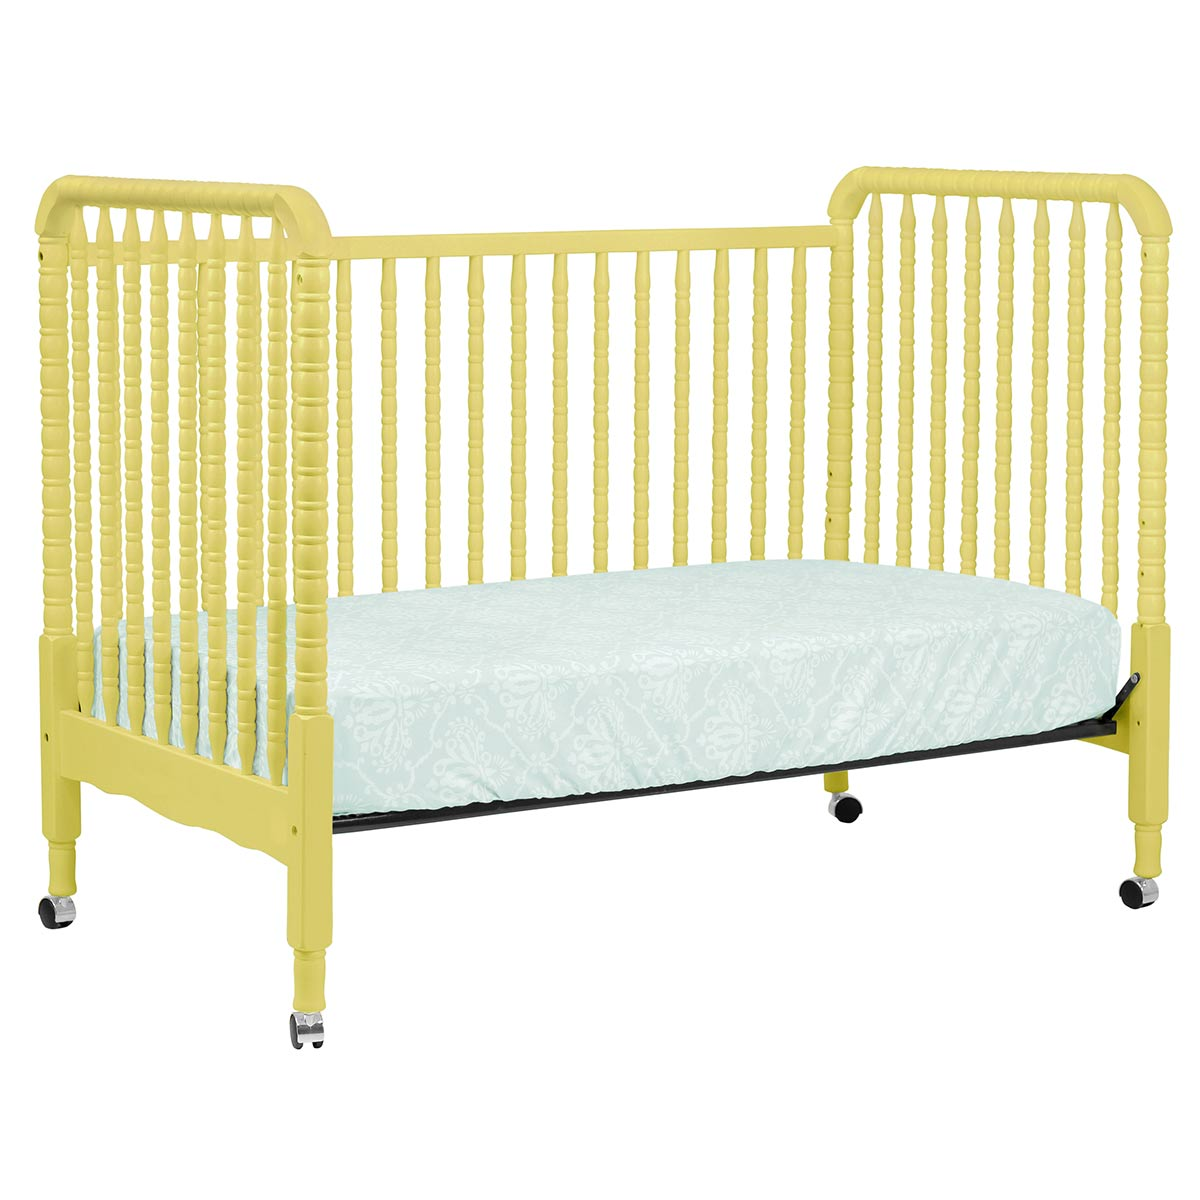 davinci jenny lind 3in1 convertible crib with toddler bed conversion kit in sunshine free shipping - Crib Conversion Kit